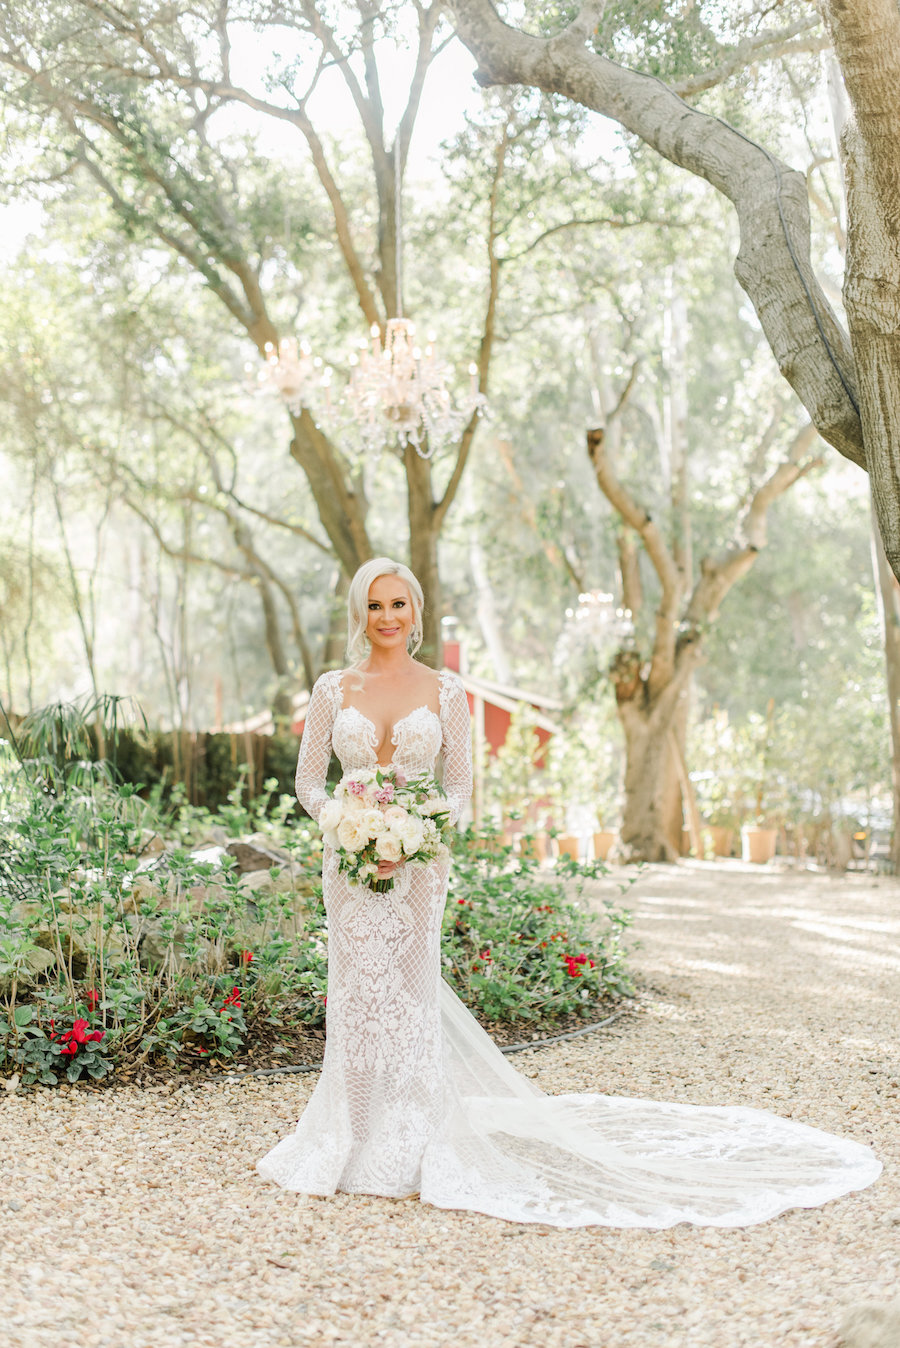 Breathtaking Outdoor White and Blush Wedding in Malibu